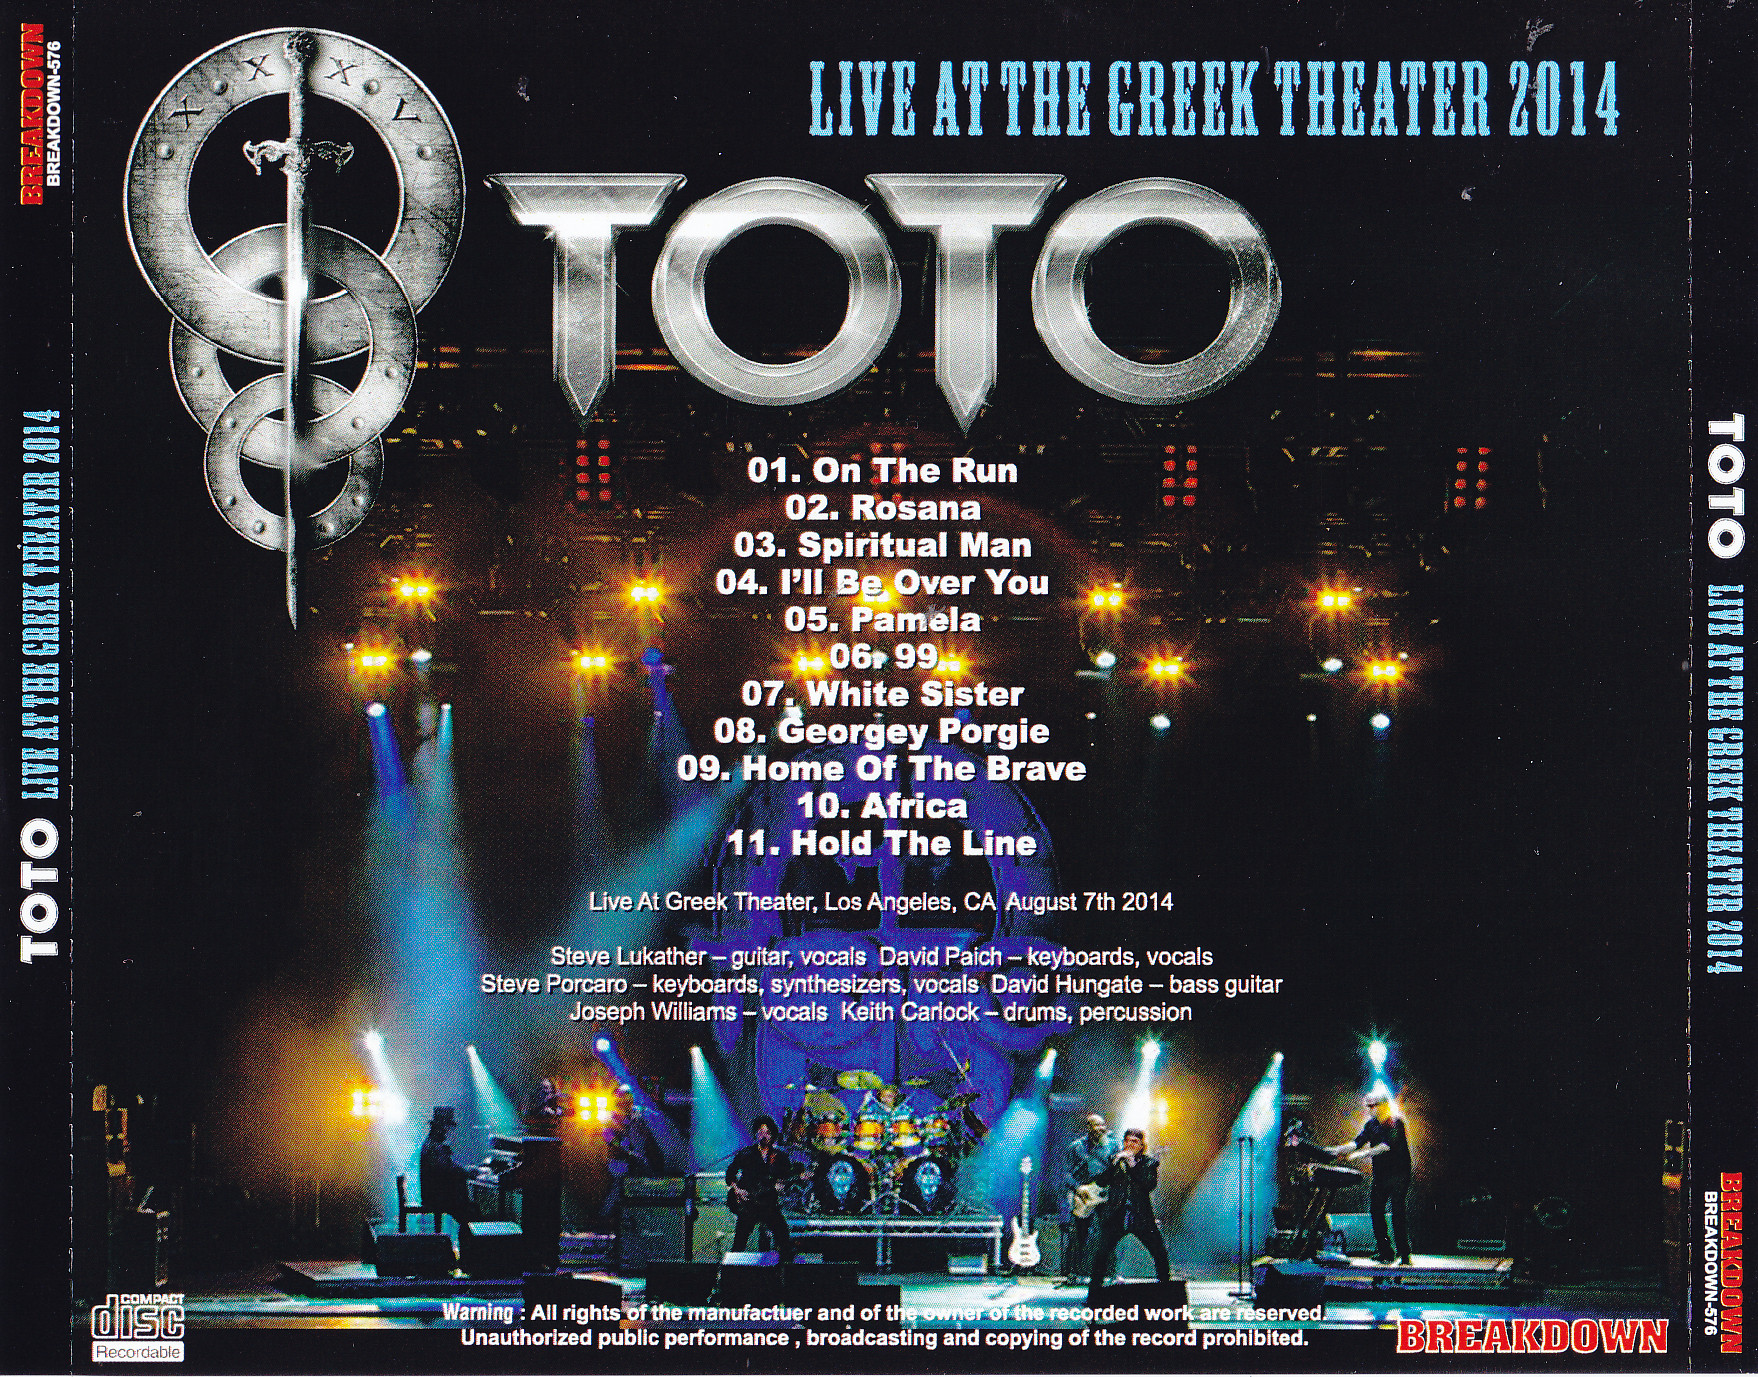 Toto / Live At The Greek Theater 2014 / 1CDR – GiGinJapan